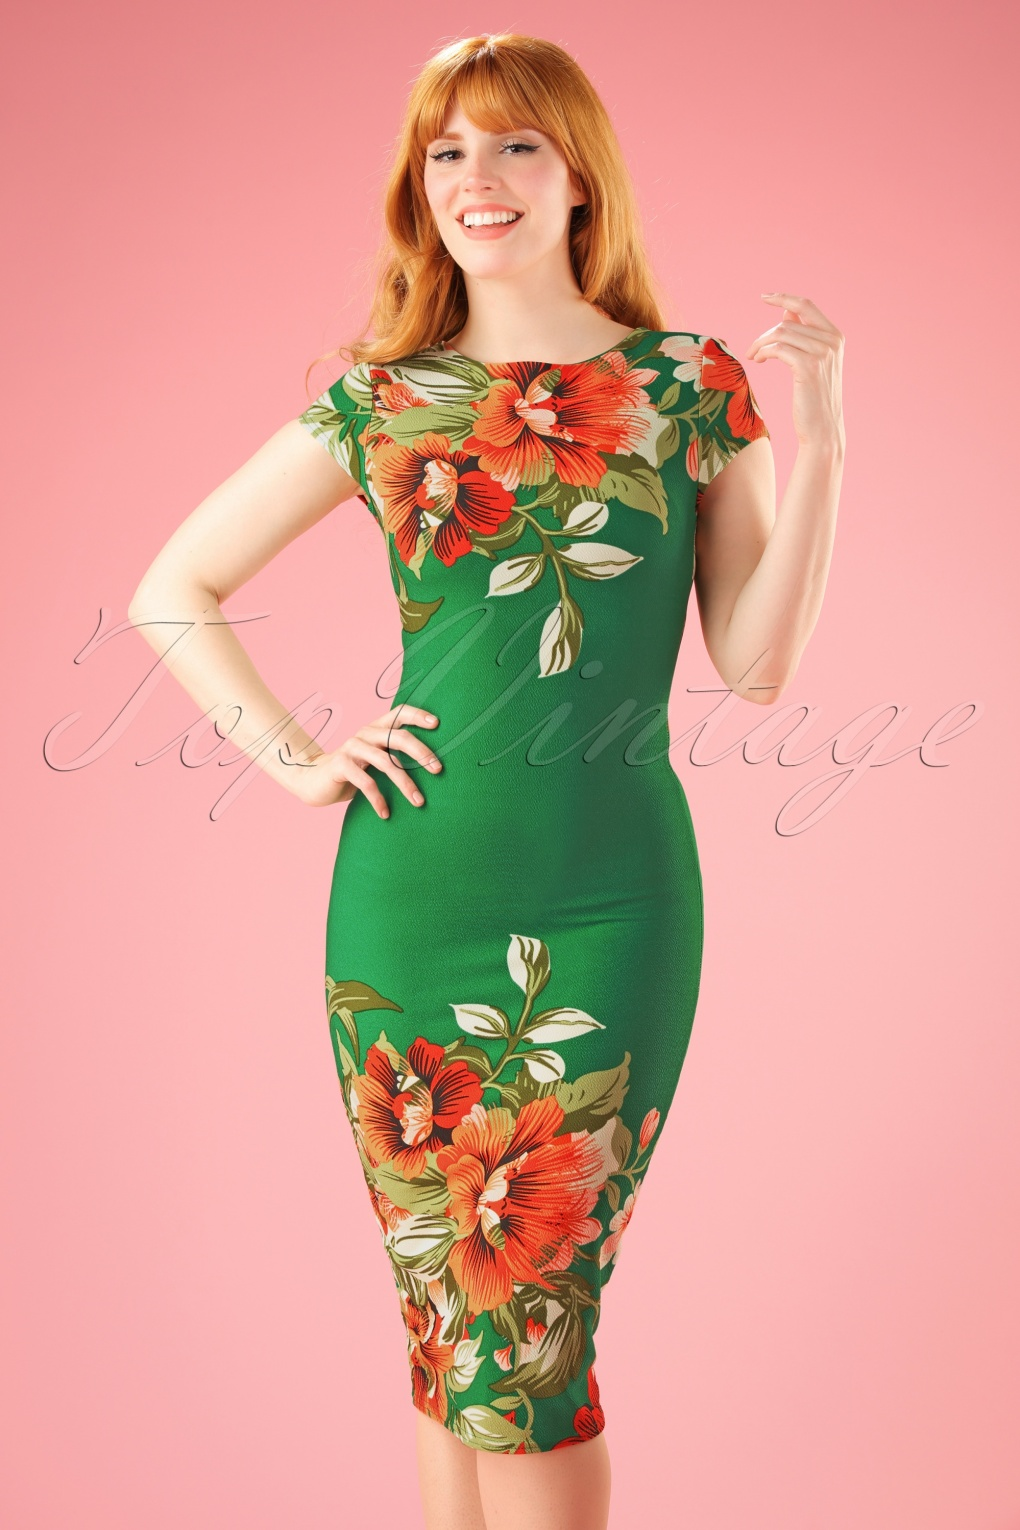 Wiggle Dresses | Pencil Dresses 60s Aloha Tropical Garden Short Sleeves Pencil Dress in Emerald Green £25.57 AT vintagedancer.com